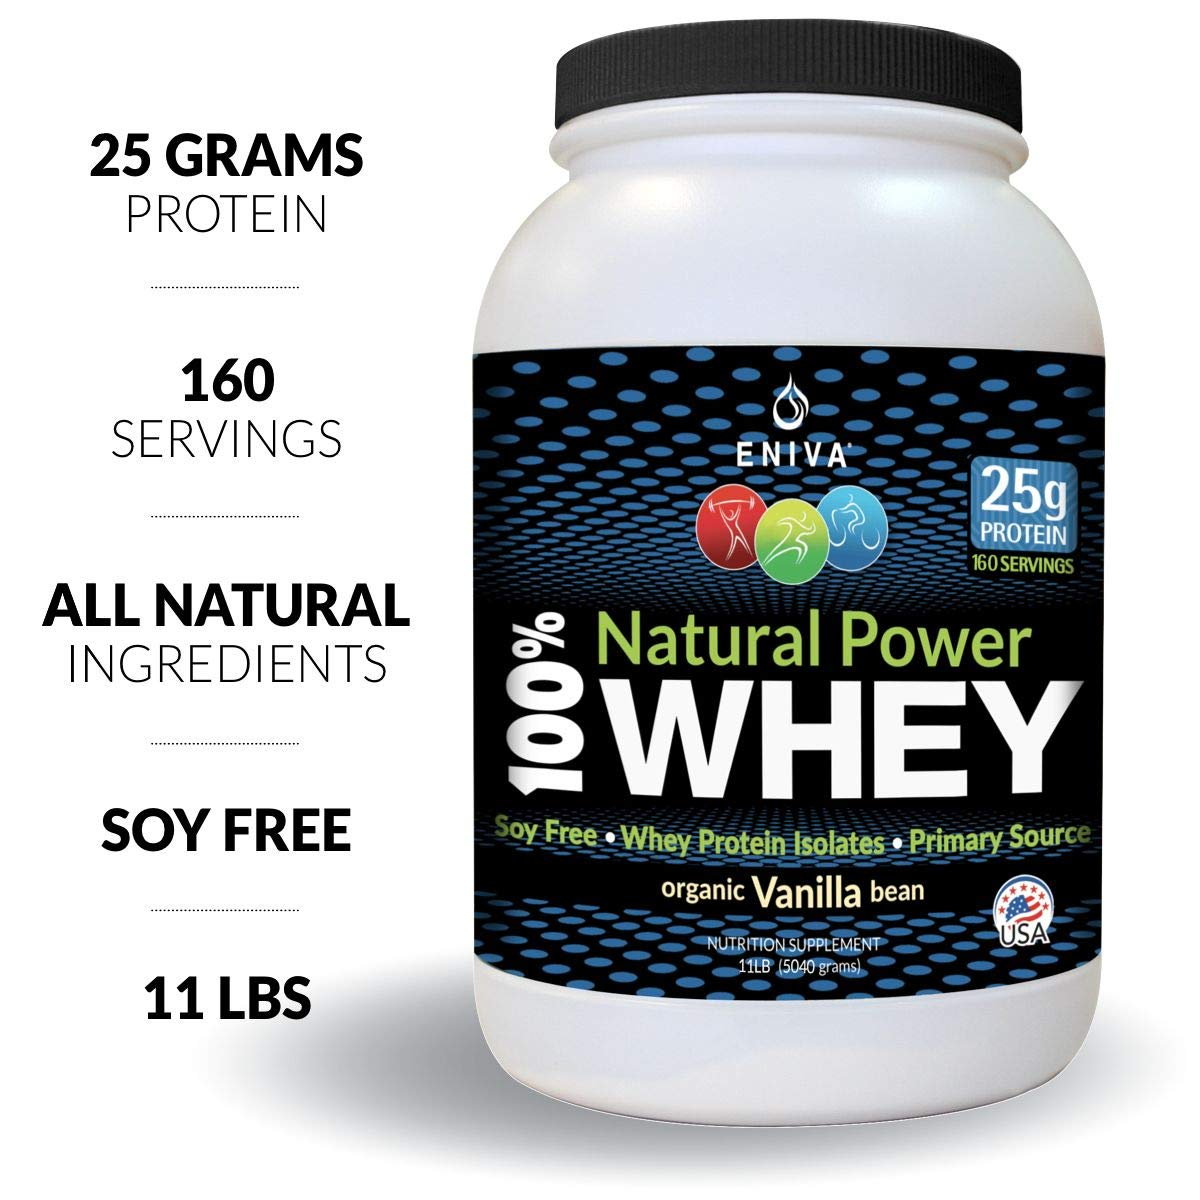 100% Whey Protein Powder 11LB. 160 Servings. Isolate Primary. All Natural. No Soy. Organic Vanilla Flavor. Zero Artificial Ingredients. Non GMO. Gluten Free. Made in USA by Eniva Health.